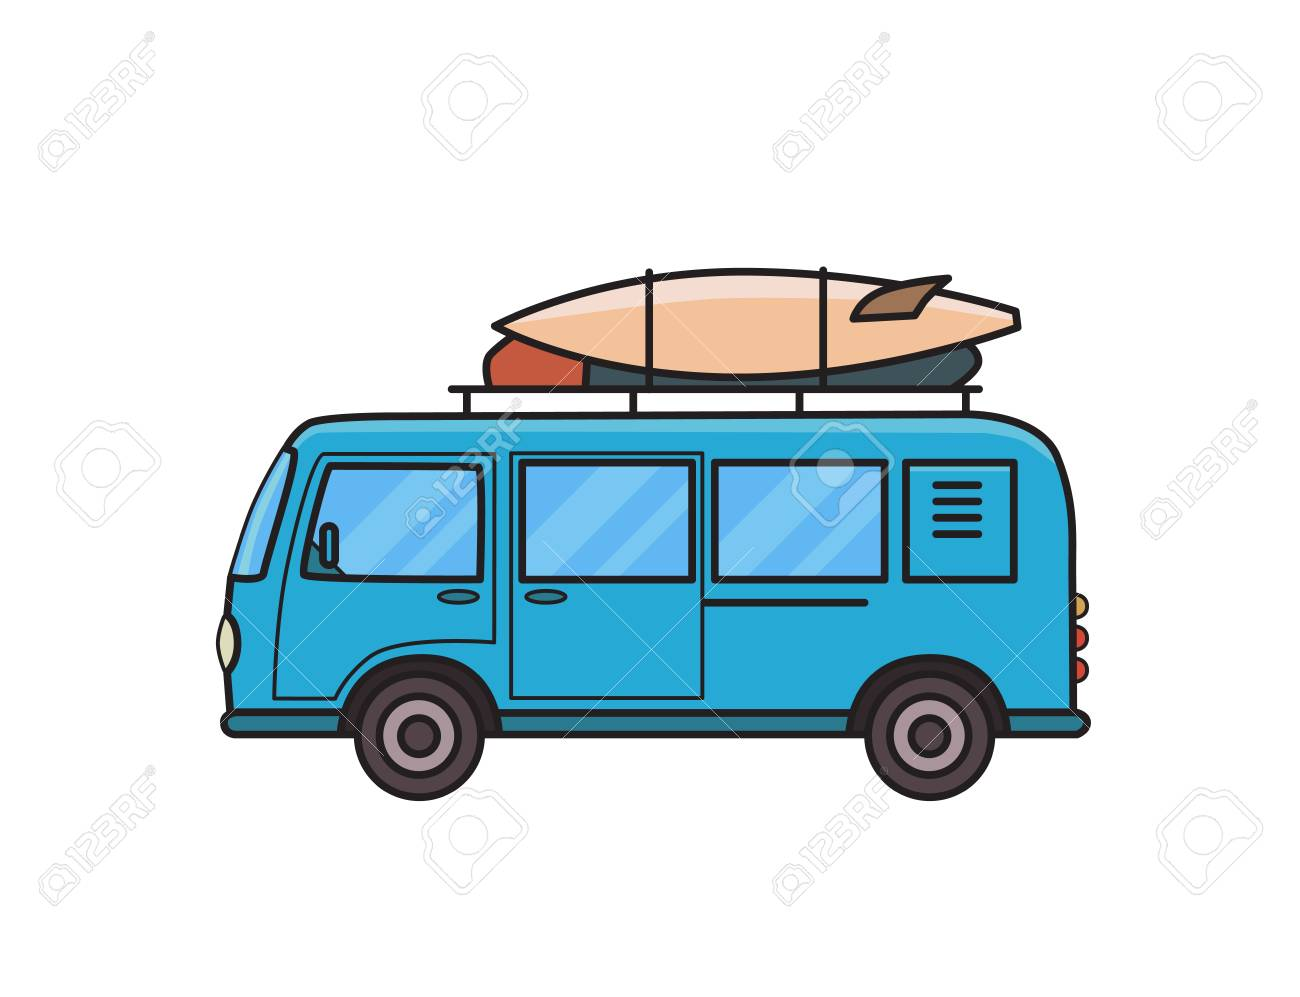 Surf Rack For Car >> Blue Minivan Car With Surfboard And Luggage On Roof Rack Surfers